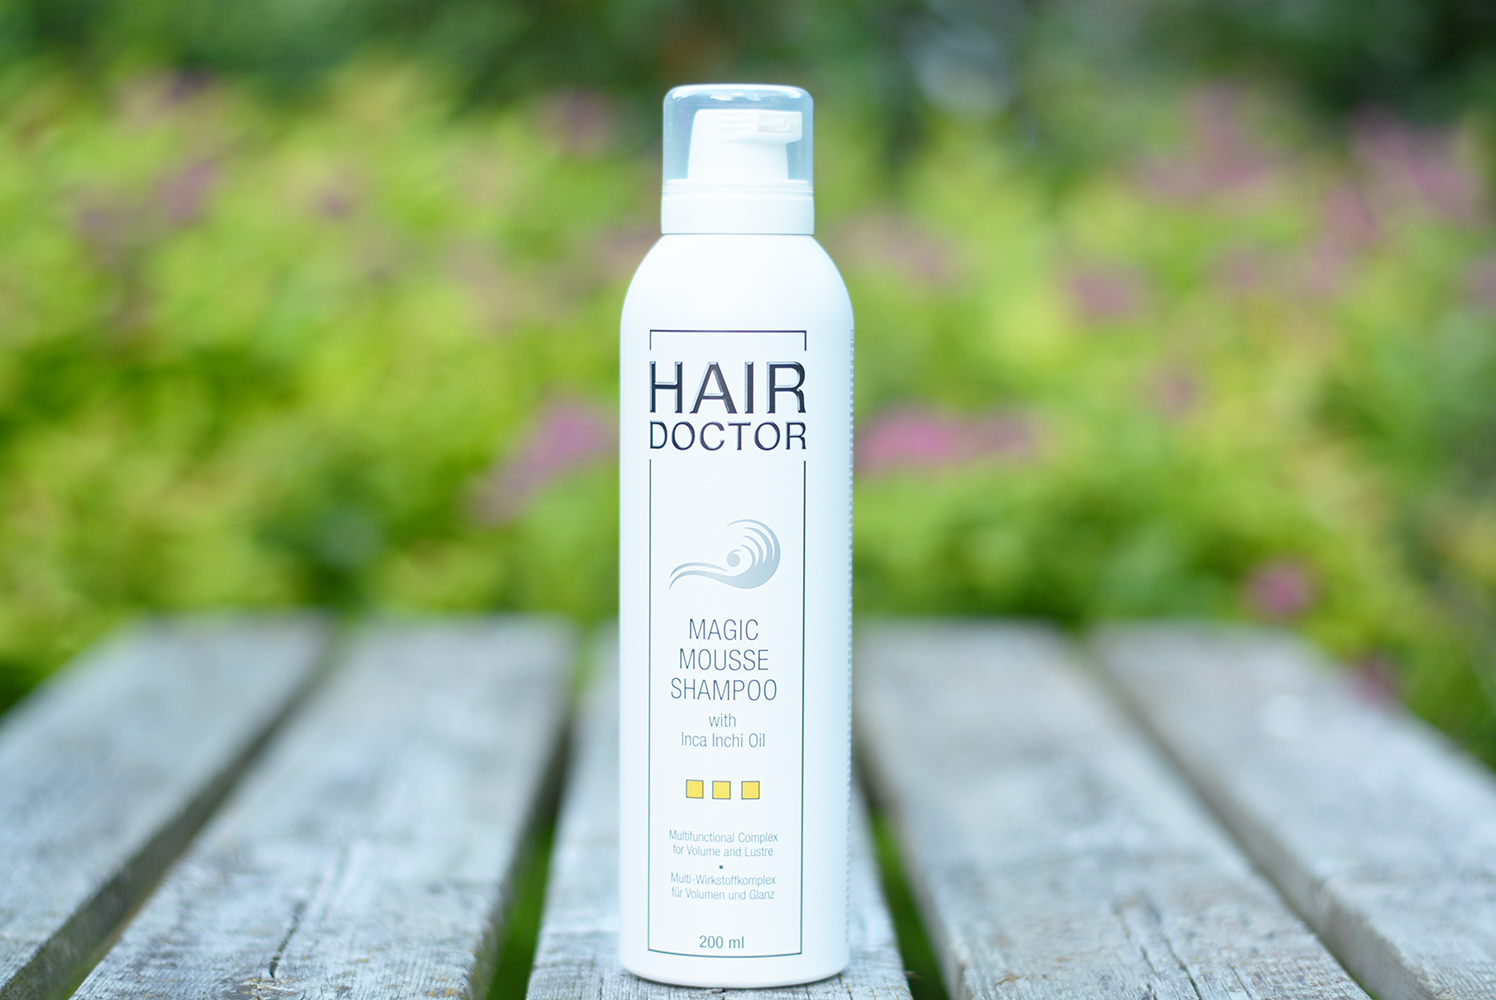 Review: Hair Doctor